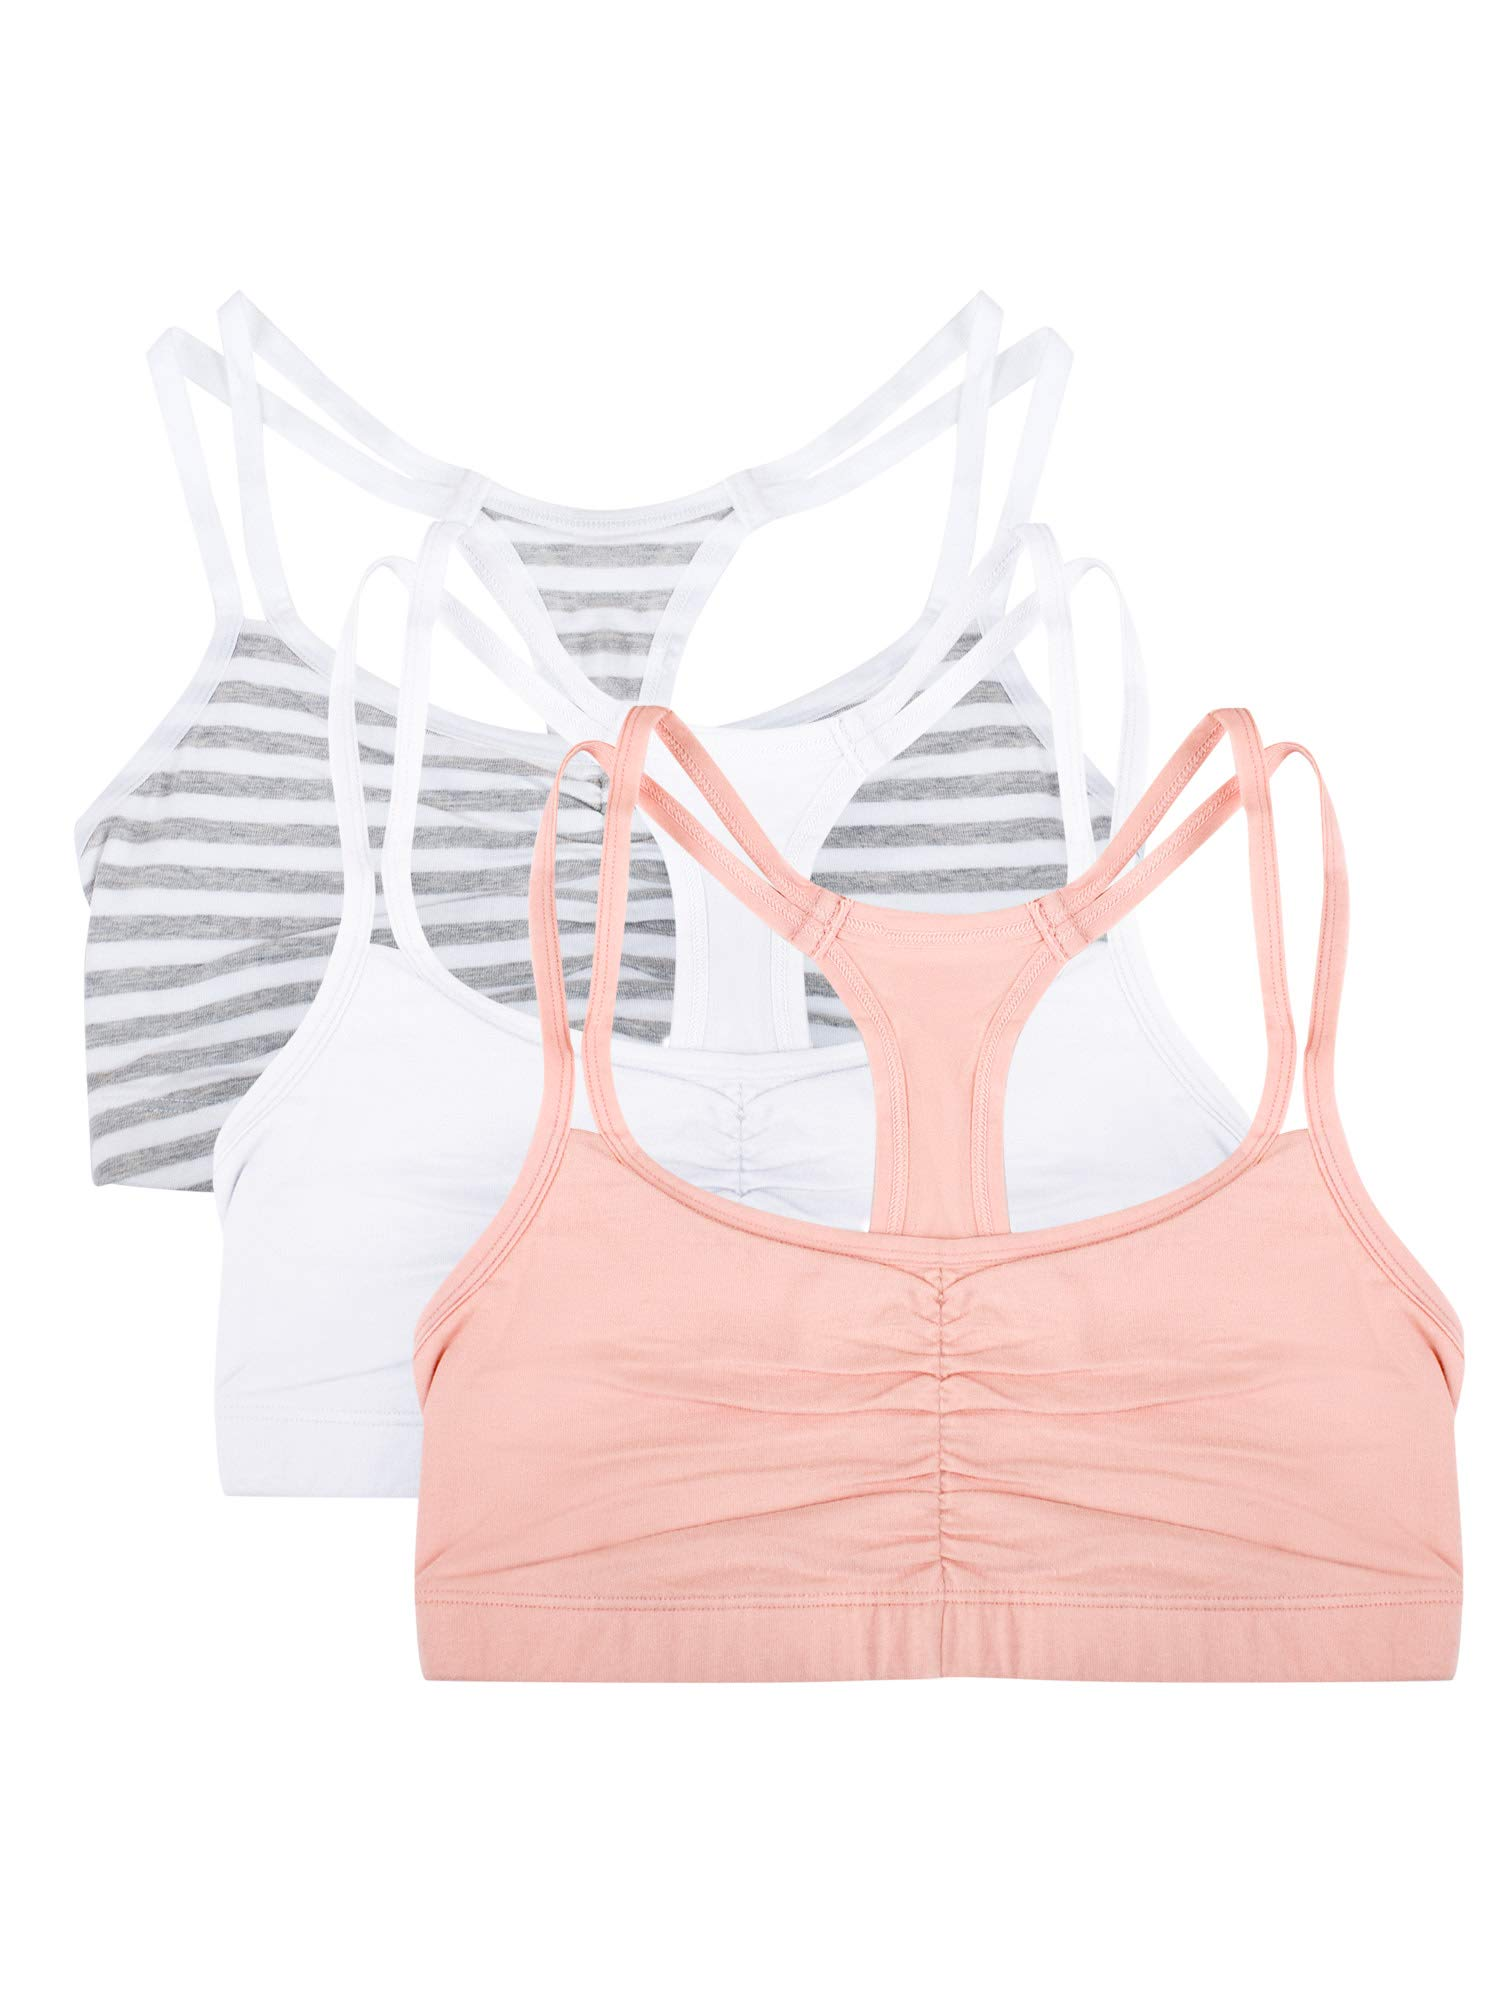 Fruit of the Loom womens Cotton Pullover Sport Bra, skinny stripe/white/blushing rose 38 by Fruit of the Loom